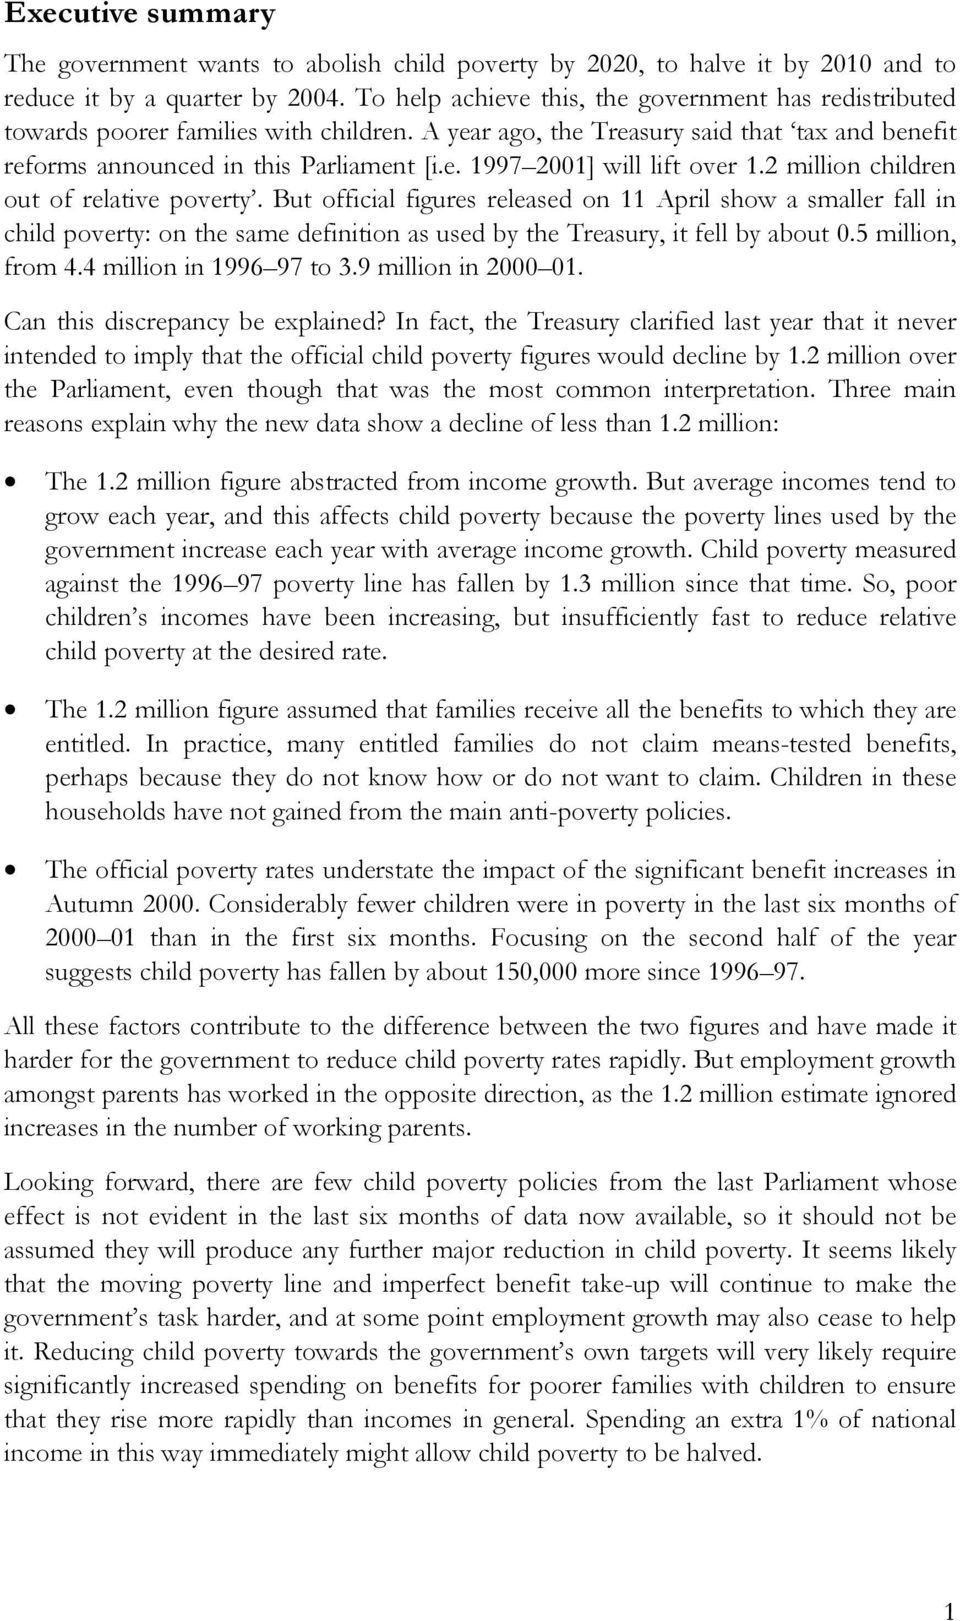 2 million children out of relative poverty. But official figures released on 11 April show a smaller fall in child poverty: on the same definition as used by the Treasury, it fell by about 0.